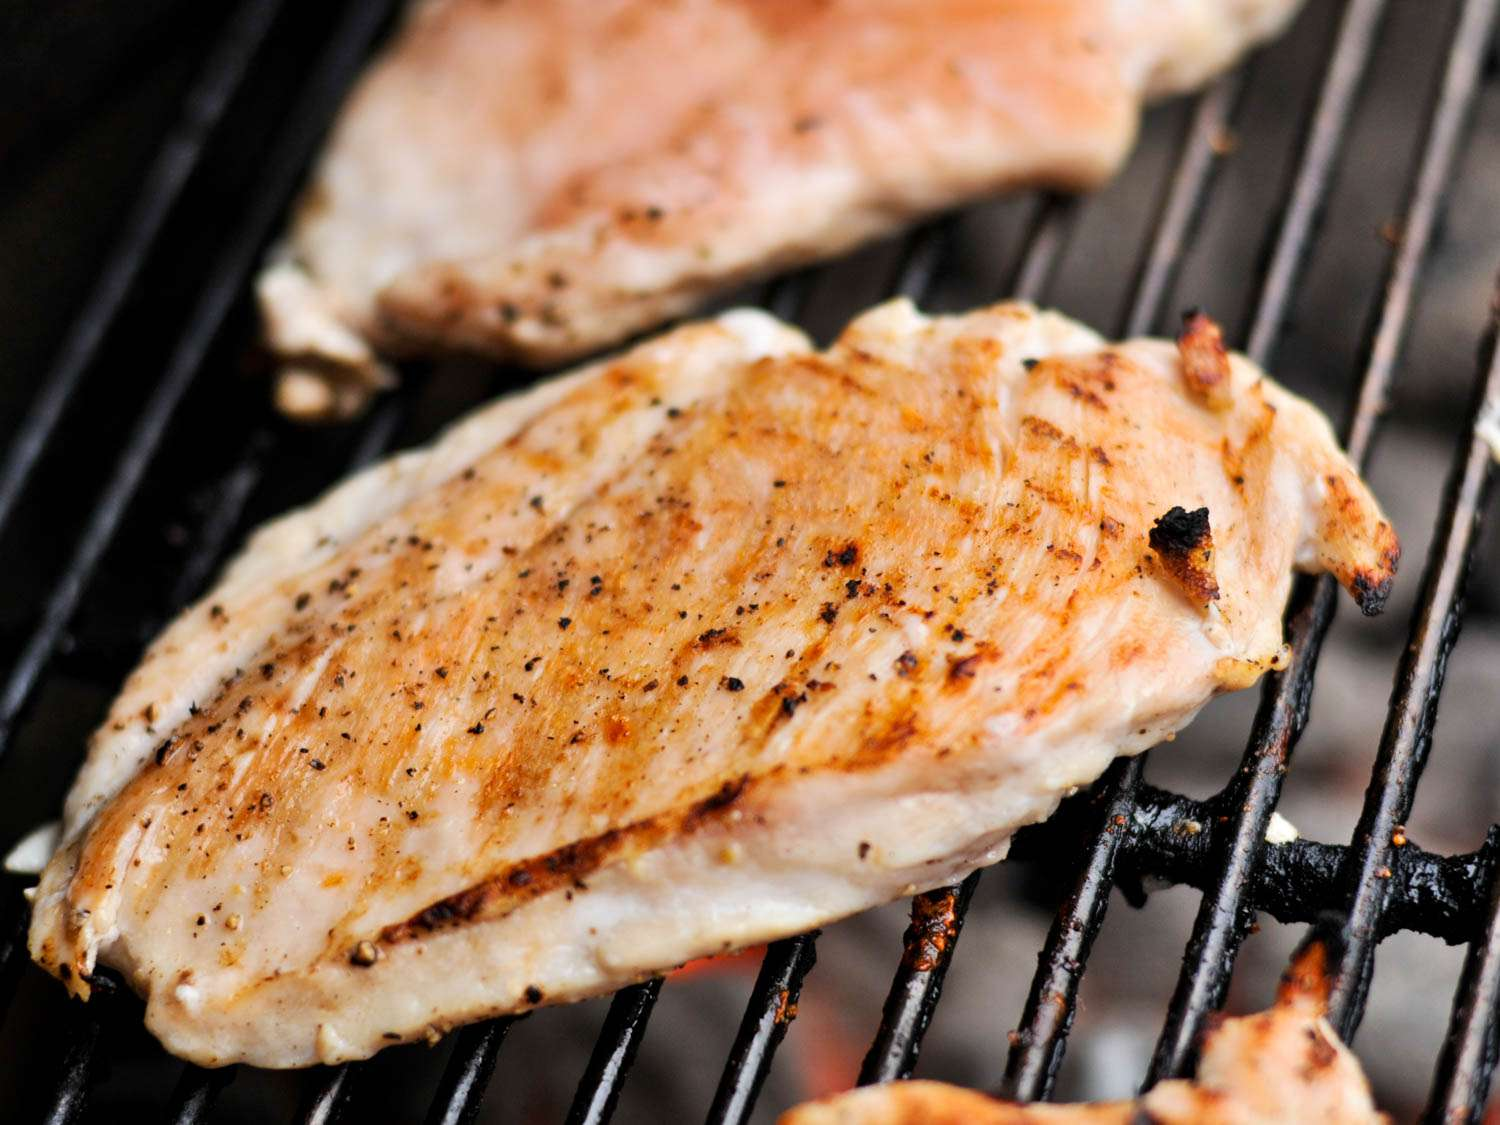 A chicken breast on a grill